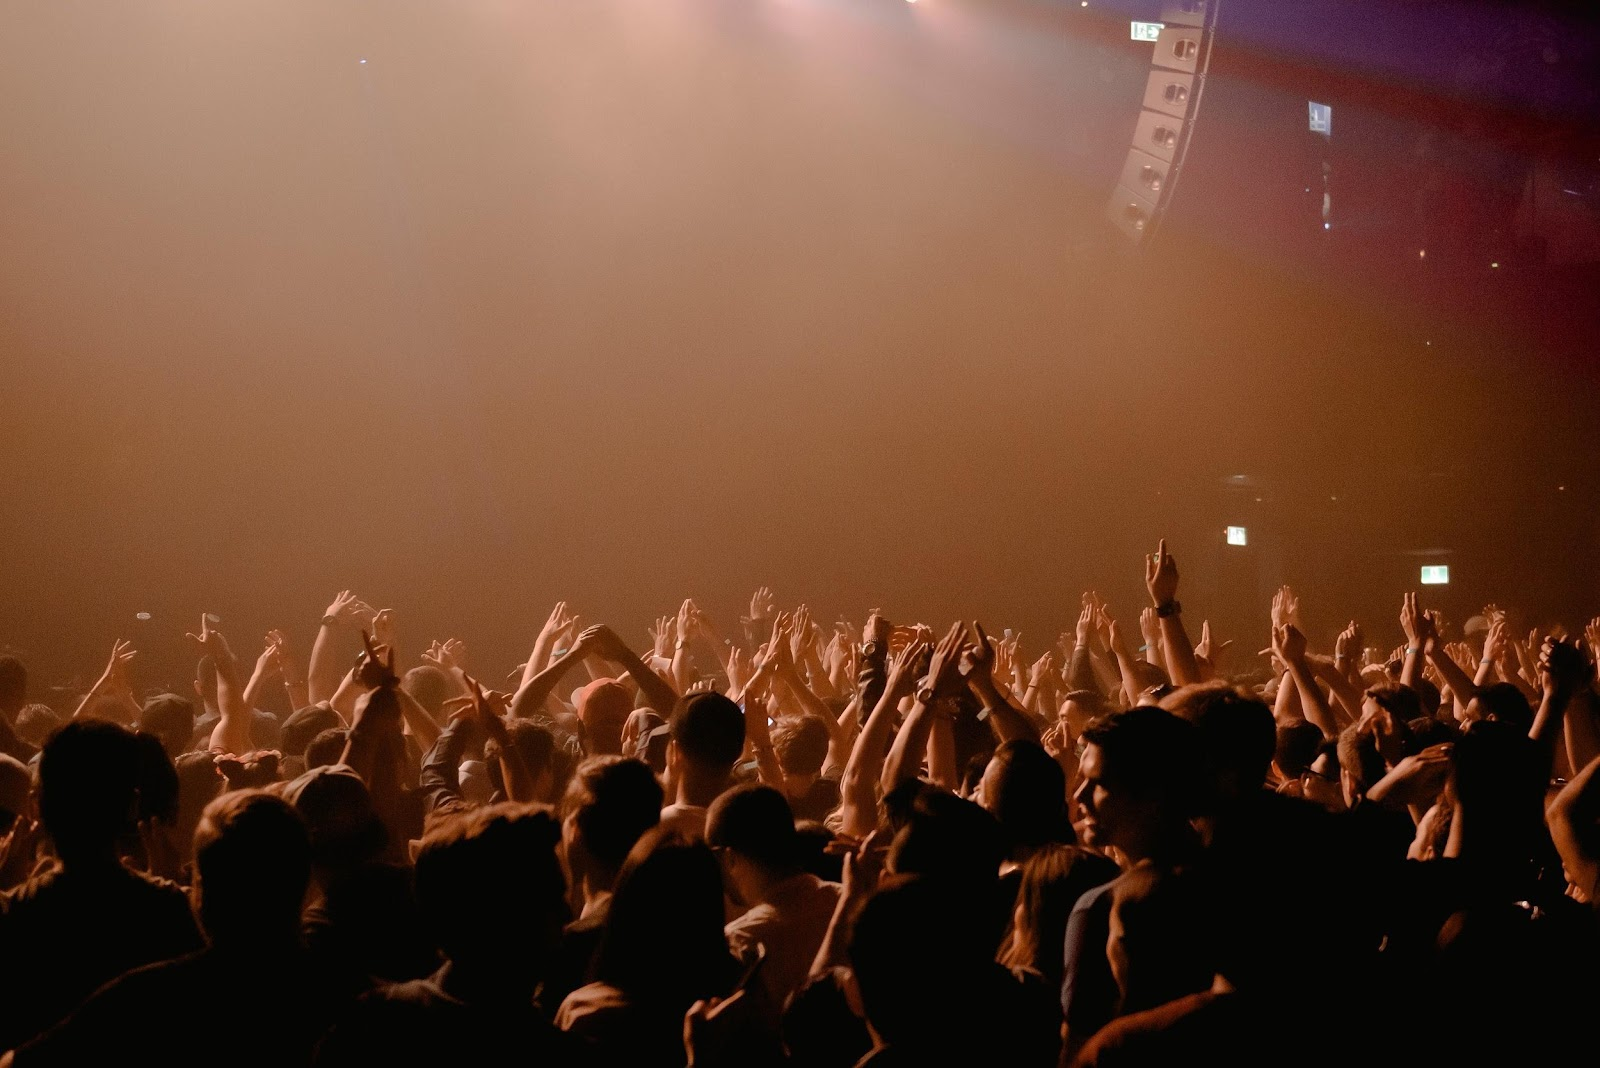 implications of digital marketing, power to the audience